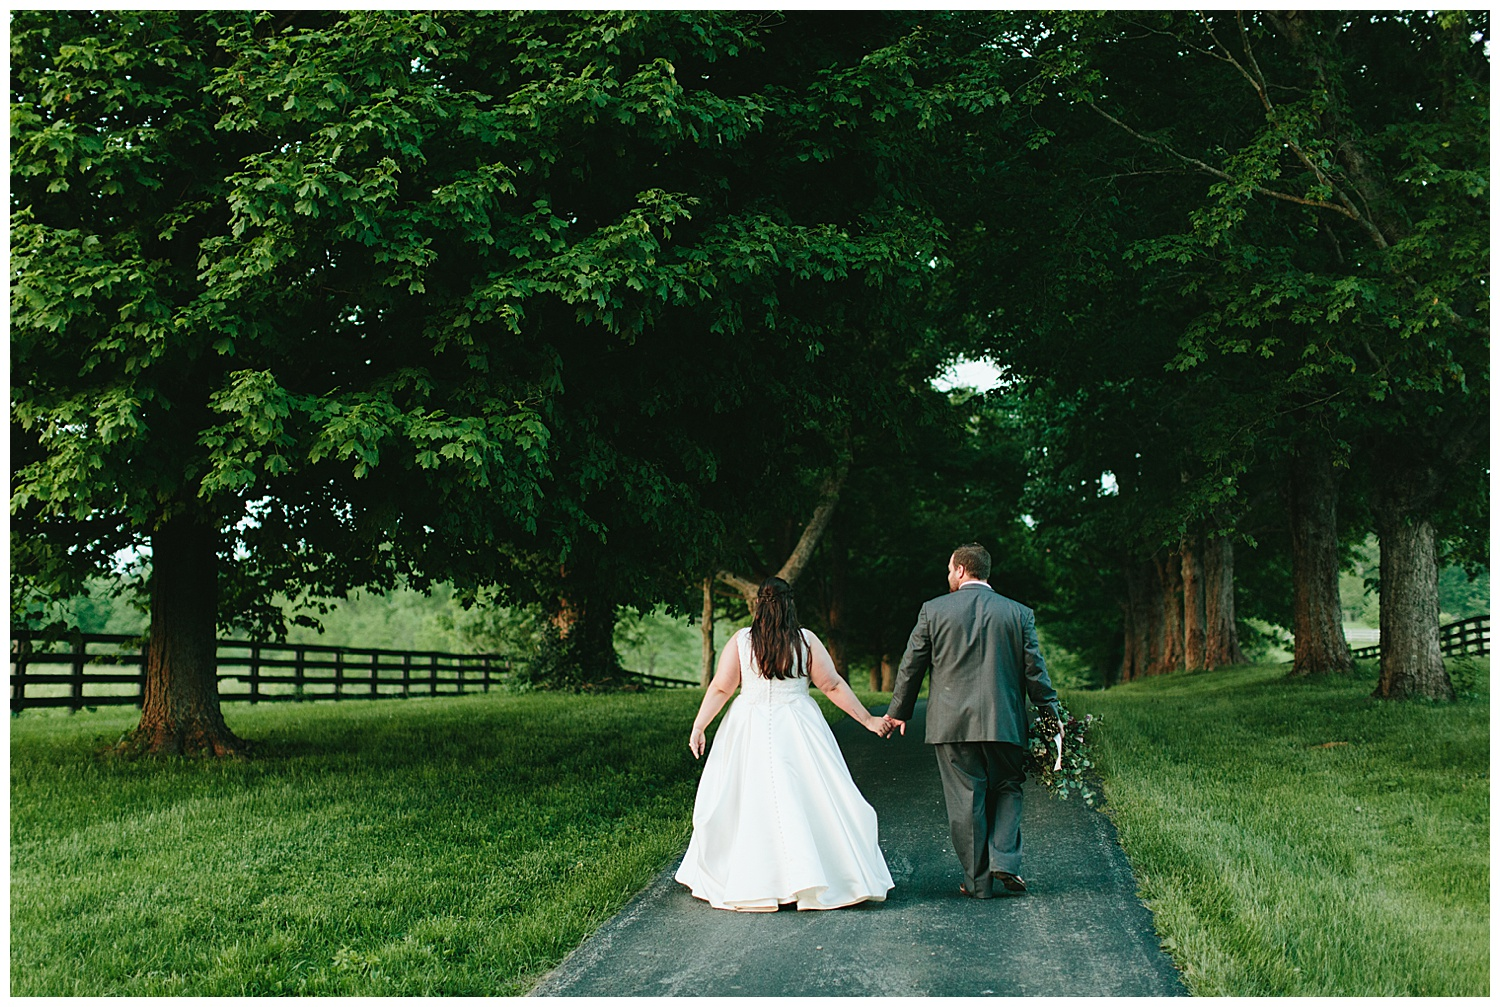 trent.and.kendra.photography.eden.springs.farmstead.shelbyville.wedding-139-1.jpg